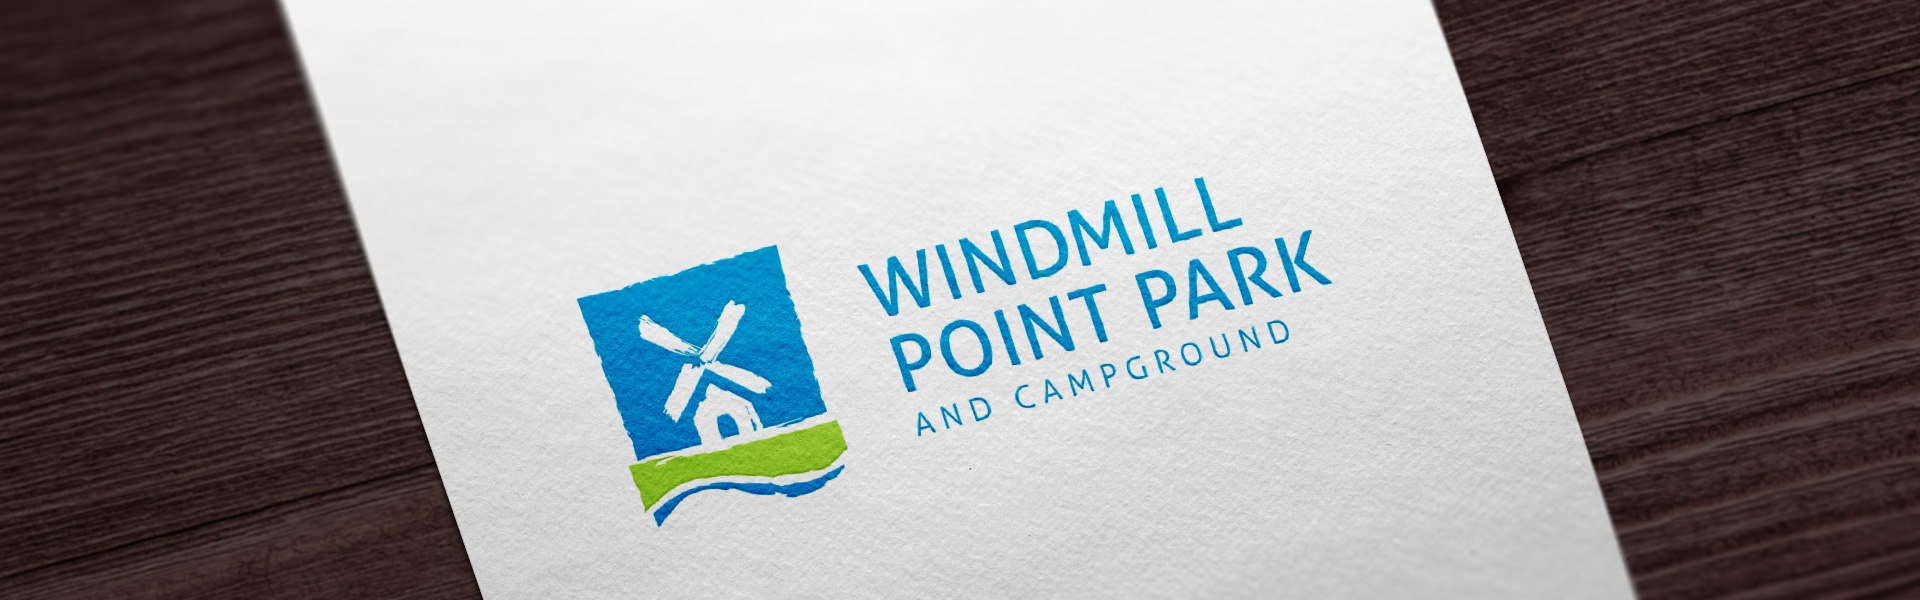 Windmill Point Park identity – stylized windmill with text